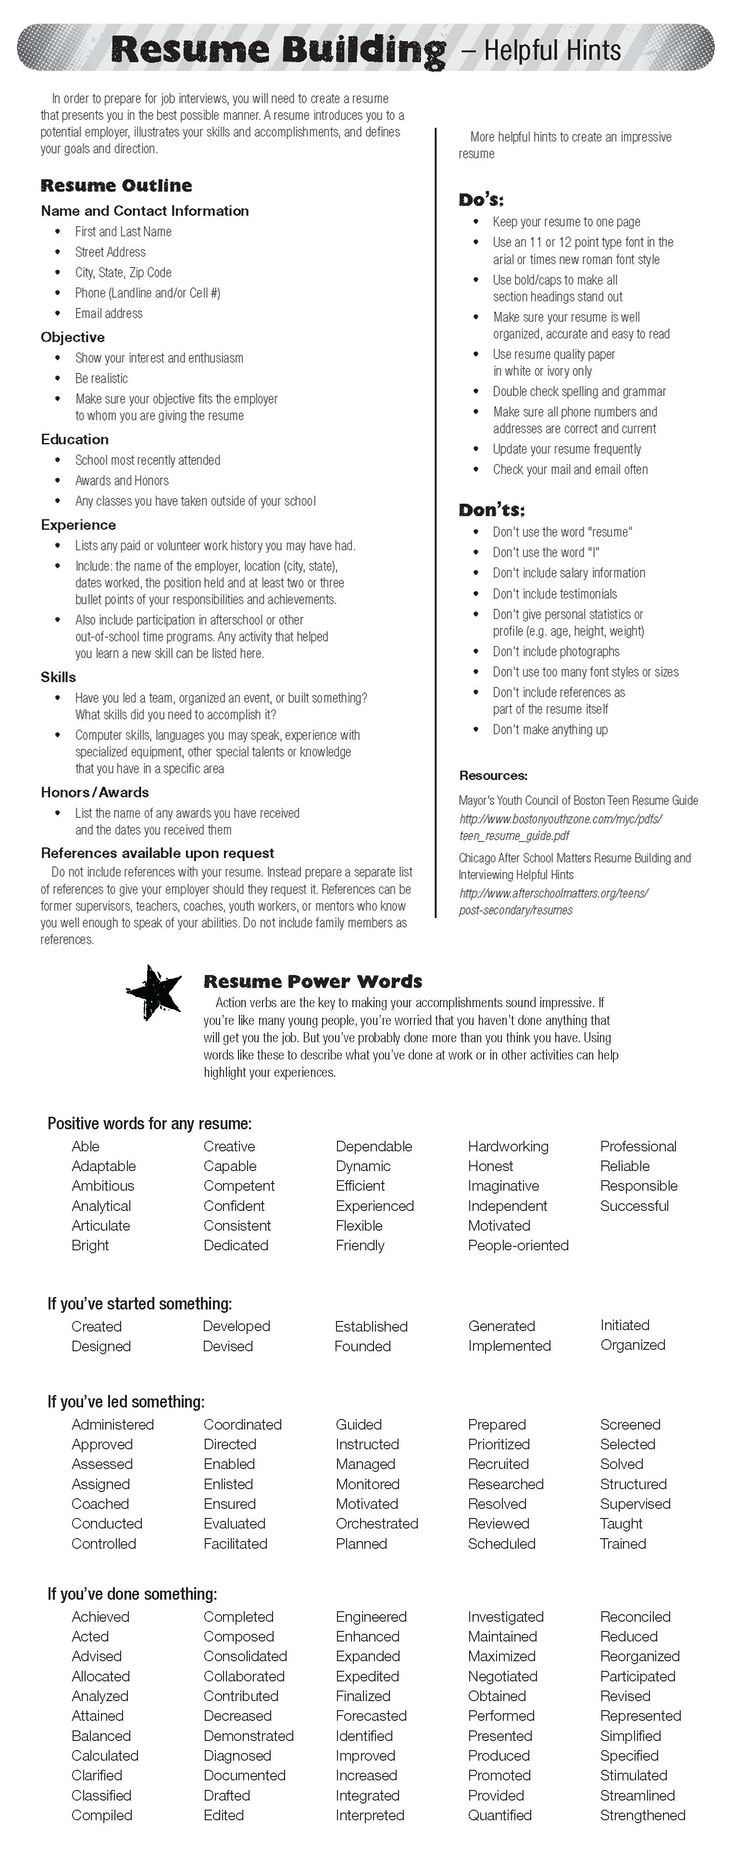 Opposenewapstandardsus  Gorgeous  Ideas About Resume On Pinterest  Cv Format Resume Cv And  With Fetching  Ideas About Resume On Pinterest  Cv Format Resume Cv And Resume Templates With Comely Best Font To Use On Resume Also Problem Solving Skills Resume In Addition Post Resume On Linkedin And Peace Corps Resume As Well As Resume Writing Template Additionally Resume Tutorial From Pinterestcom With Opposenewapstandardsus  Fetching  Ideas About Resume On Pinterest  Cv Format Resume Cv And  With Comely  Ideas About Resume On Pinterest  Cv Format Resume Cv And Resume Templates And Gorgeous Best Font To Use On Resume Also Problem Solving Skills Resume In Addition Post Resume On Linkedin From Pinterestcom